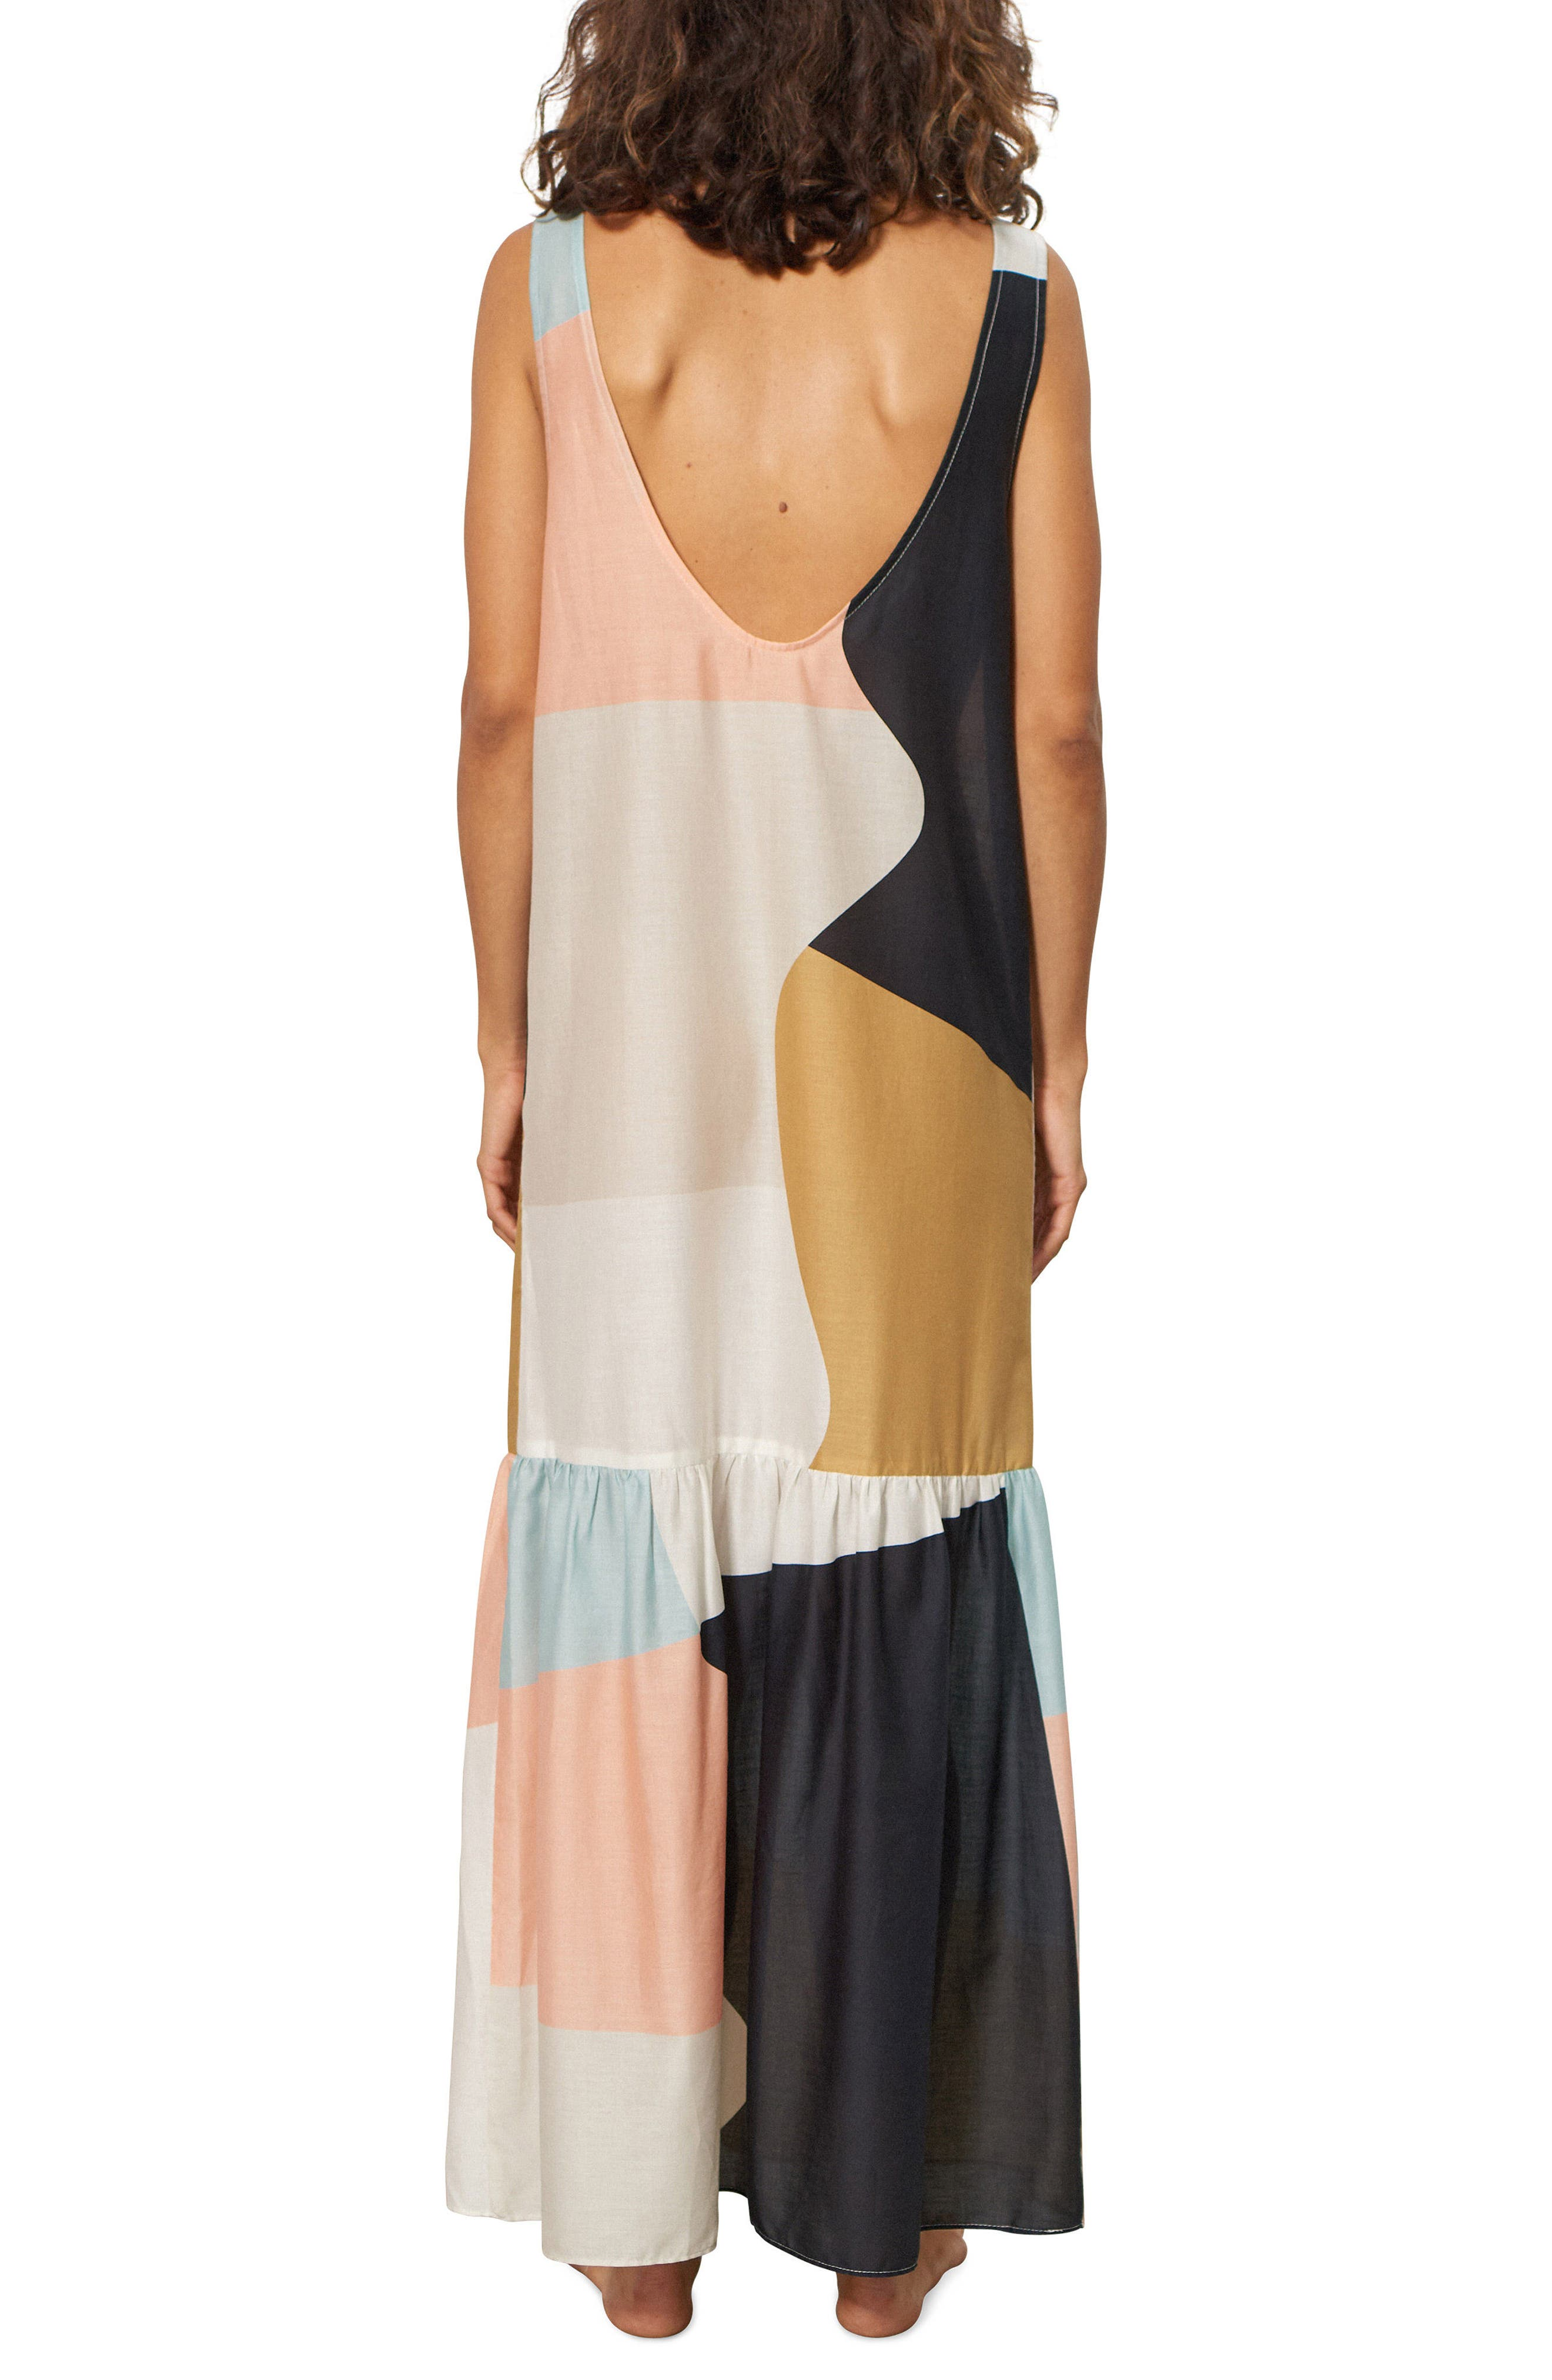 Valentina Cover-Up Dress,                             Alternate thumbnail 2, color,                             PEACH MULTI